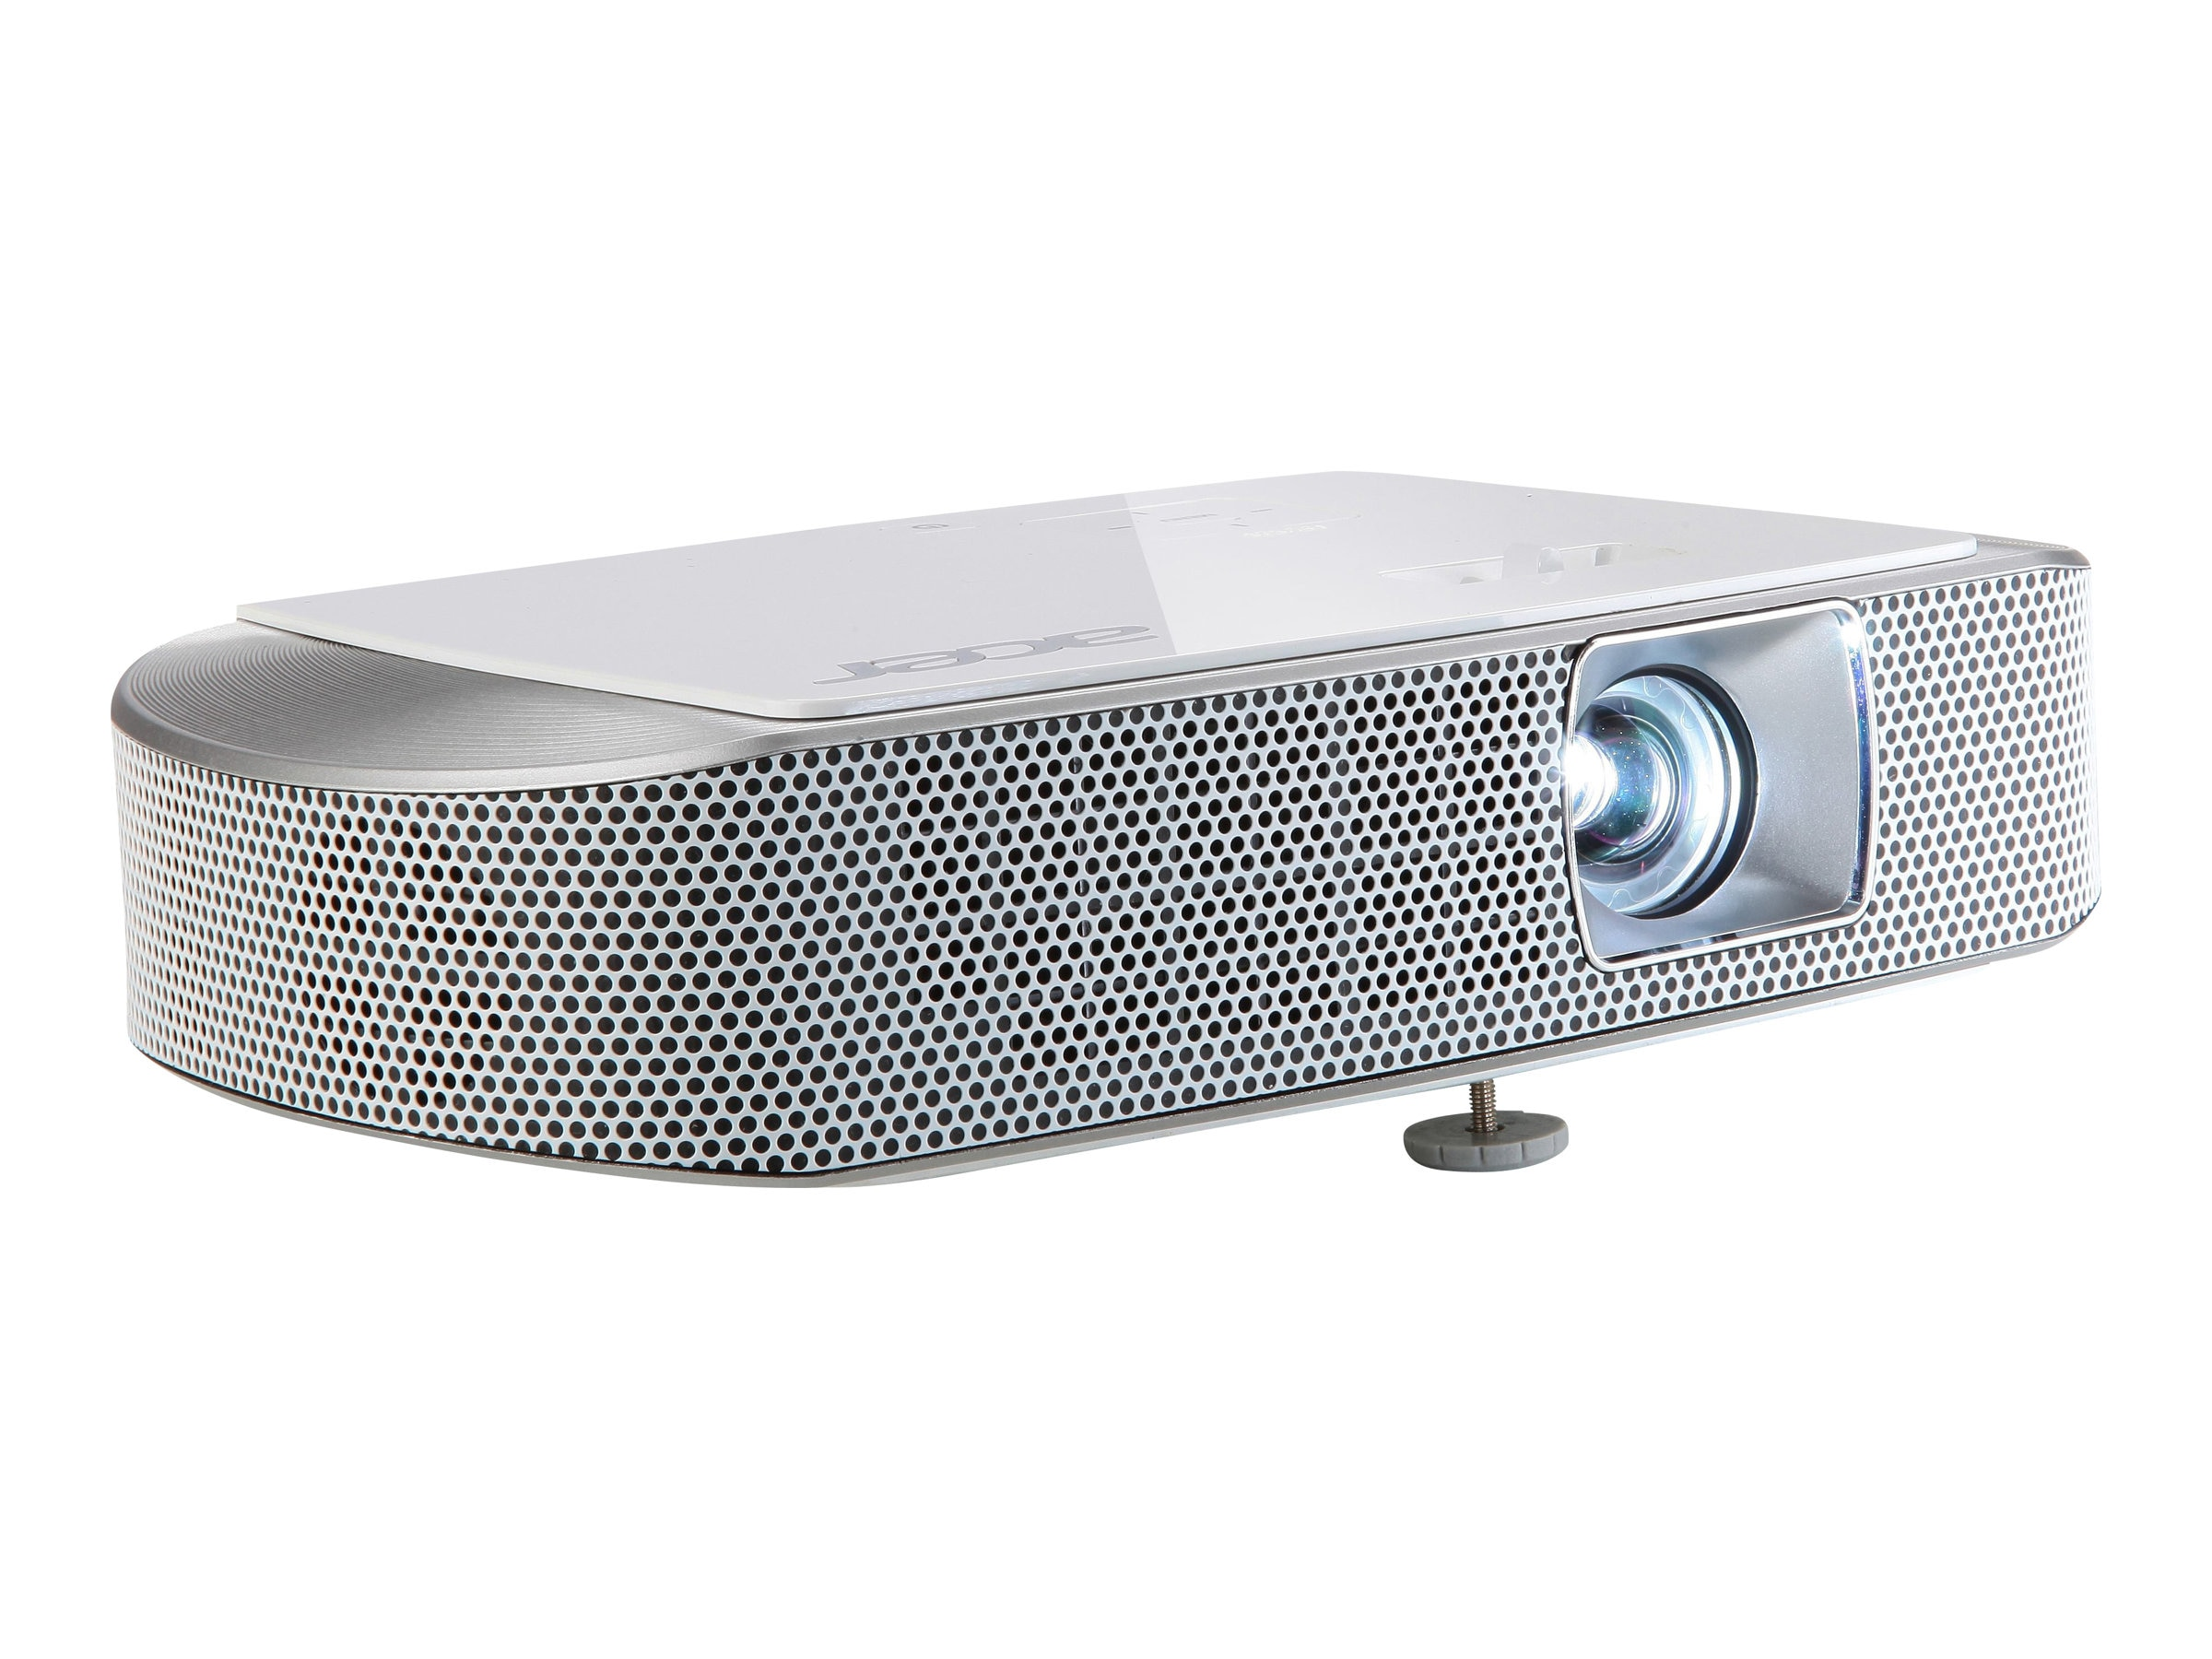 Acer K137i Wireless-Ready DLP Portable Projector, 700 Lumens, White, MR.JKX11.006